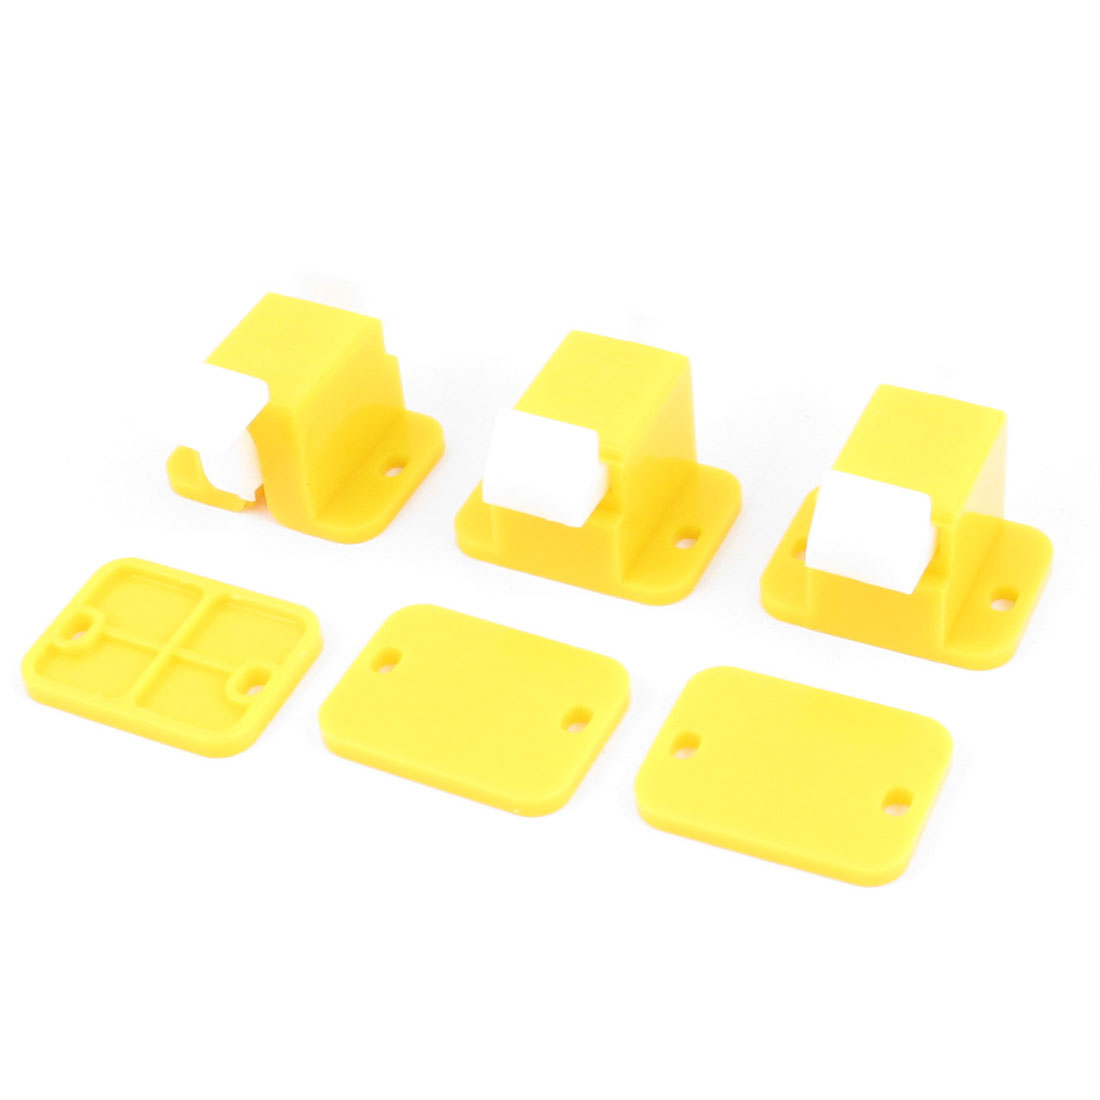 3pcs Yellow White Plastic PCB Prototype Test Testing Fixture Jig Edge Latch w Screws